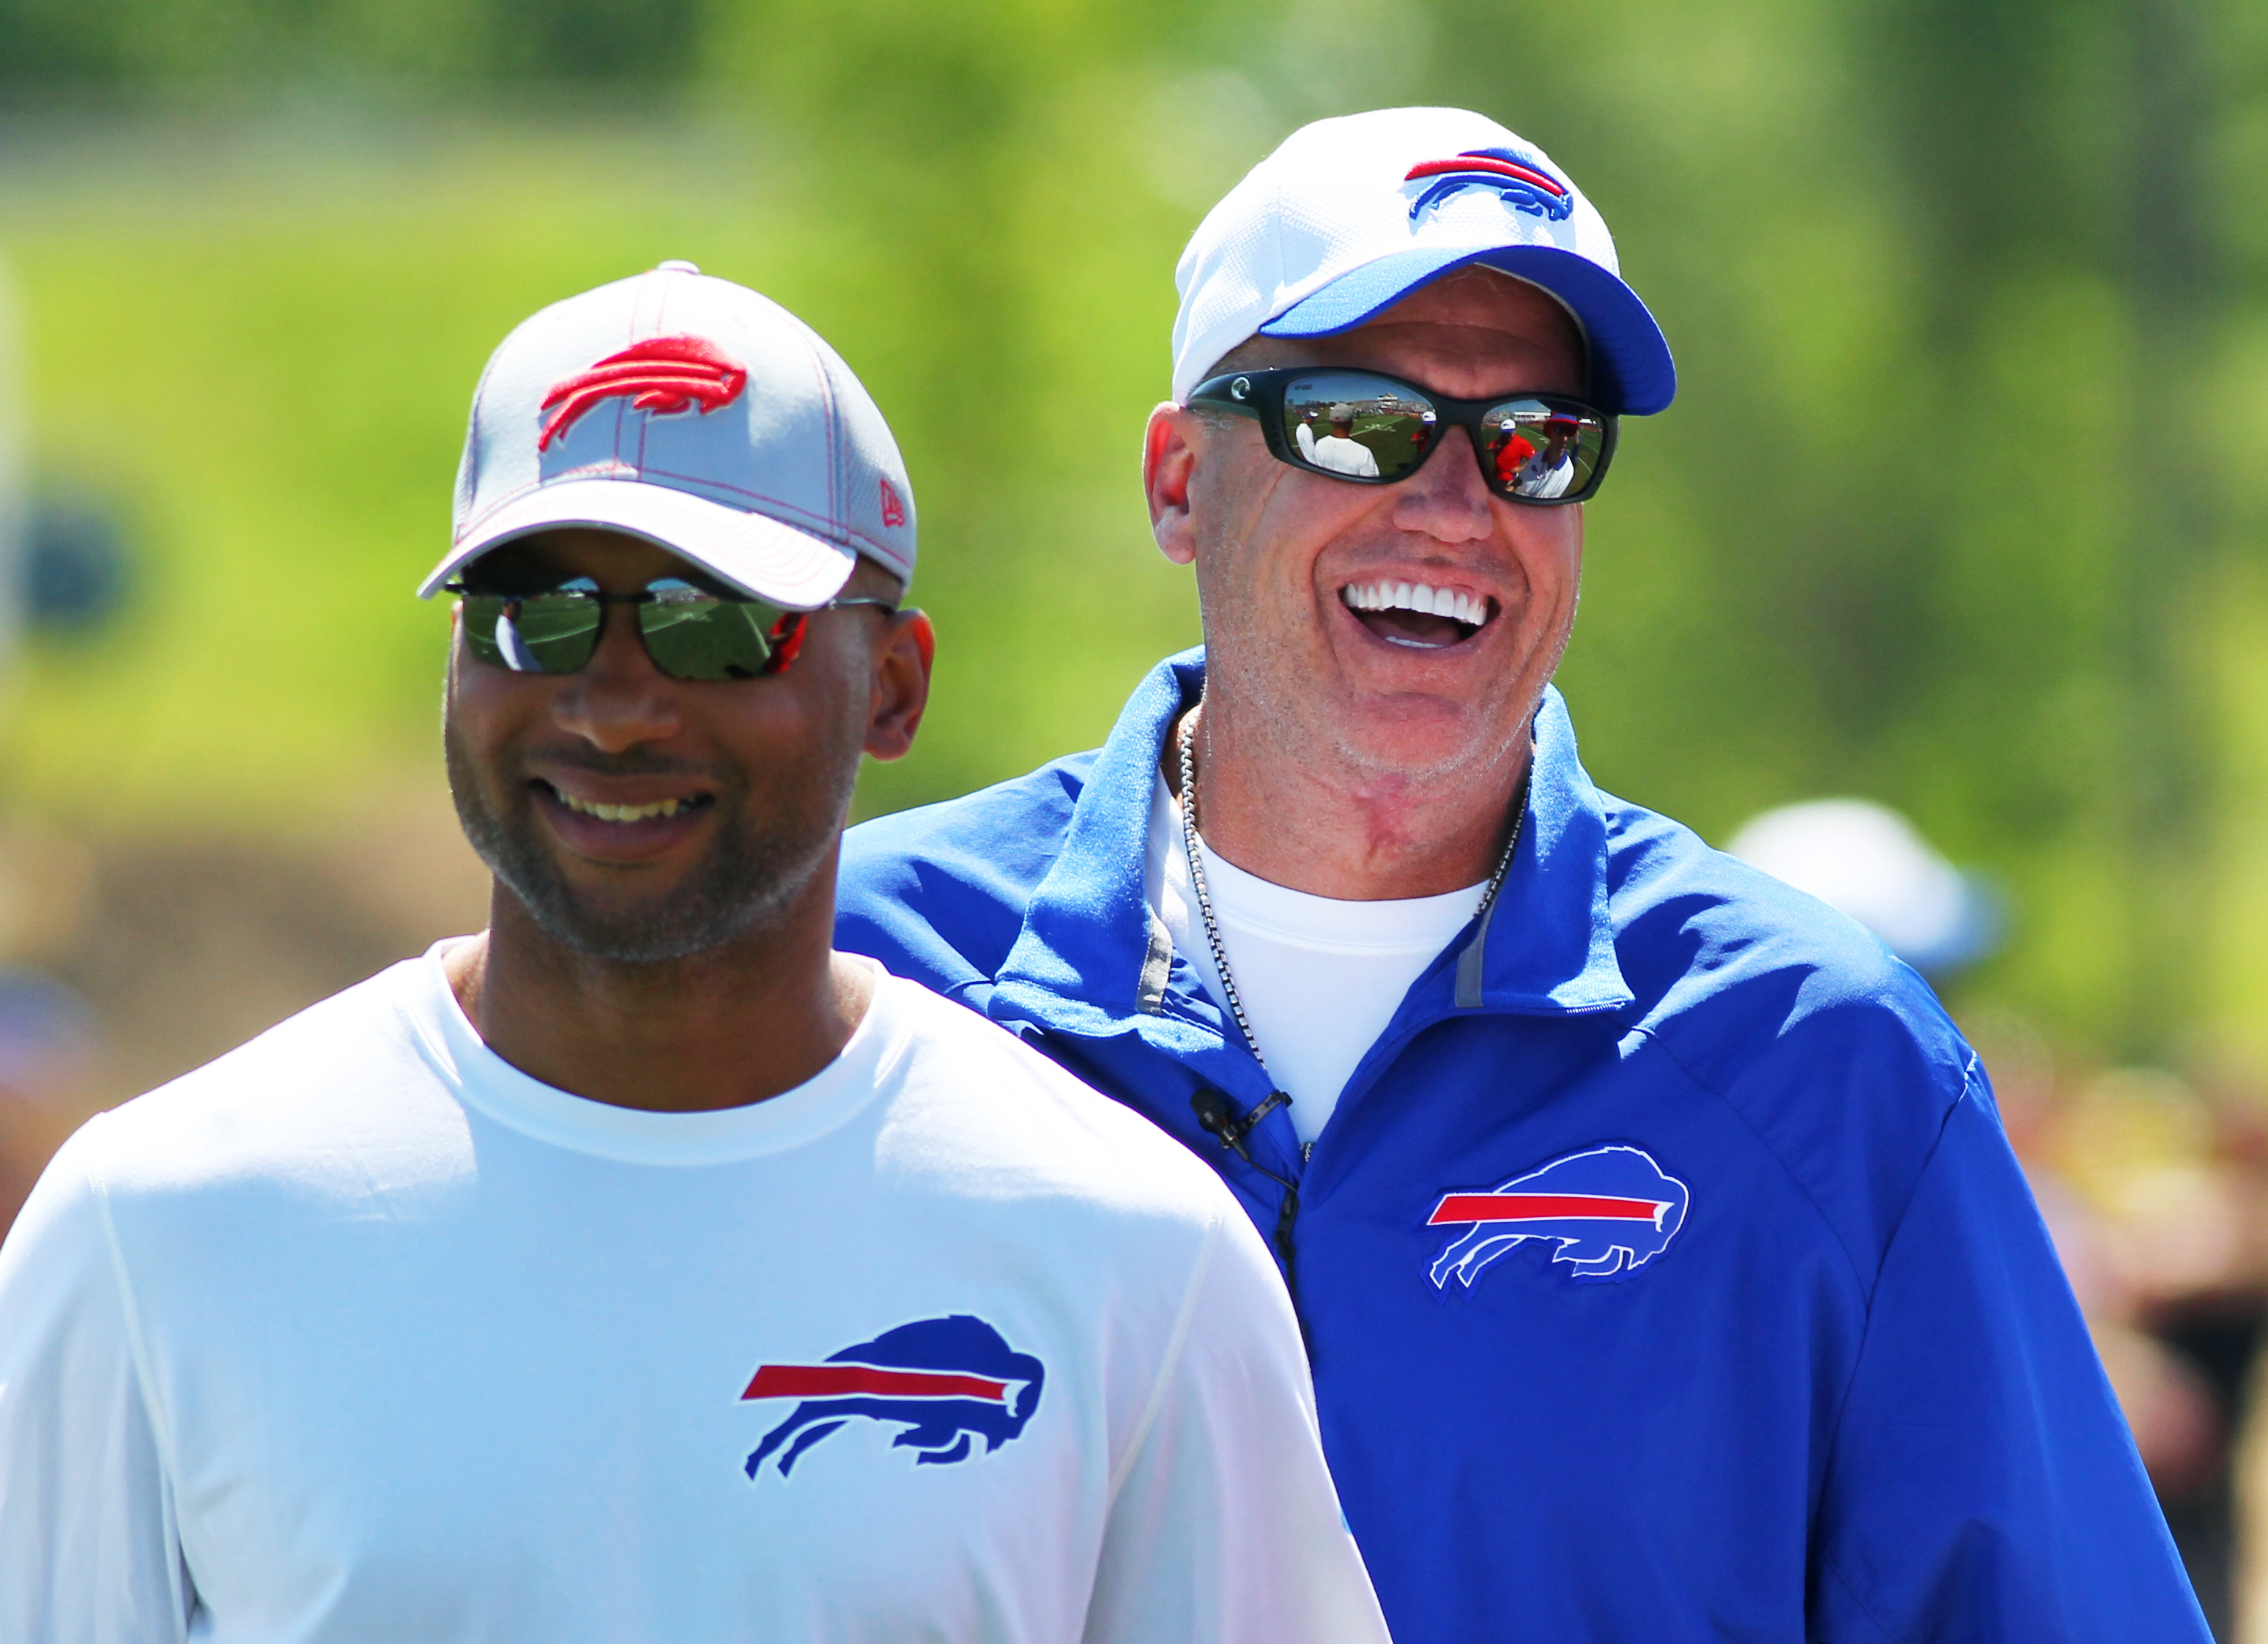 Buffalo Bills general manager Doug Whaley, left, and head coach Rex Ryan share a laugh during their team's NFL football training camp in Pittsford, N.Y., Friday, July 31, 2015. (AP Photo/Bill Wippert)